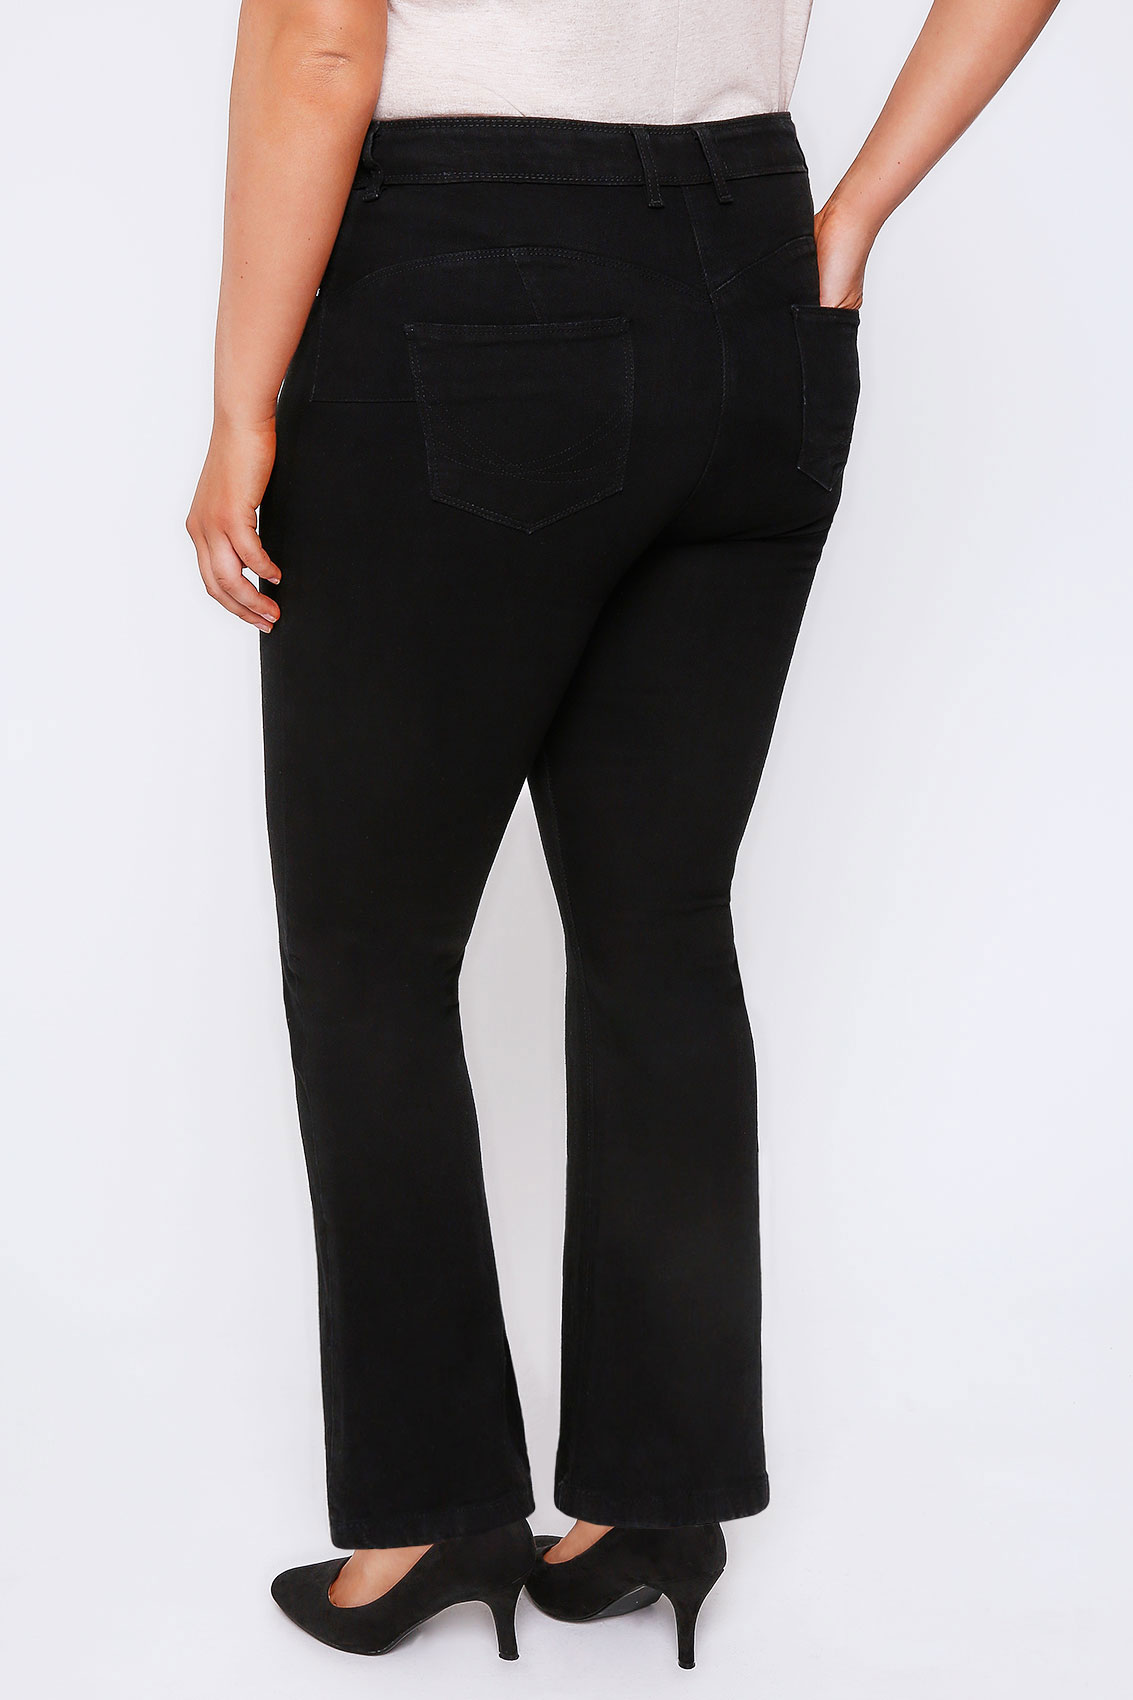 Shop a great selection of Bootcut Jeans for Women at Nordstrom Rack. Find designer Bootcut Jeans for Women up to 70% off and get free shipping on orders over $